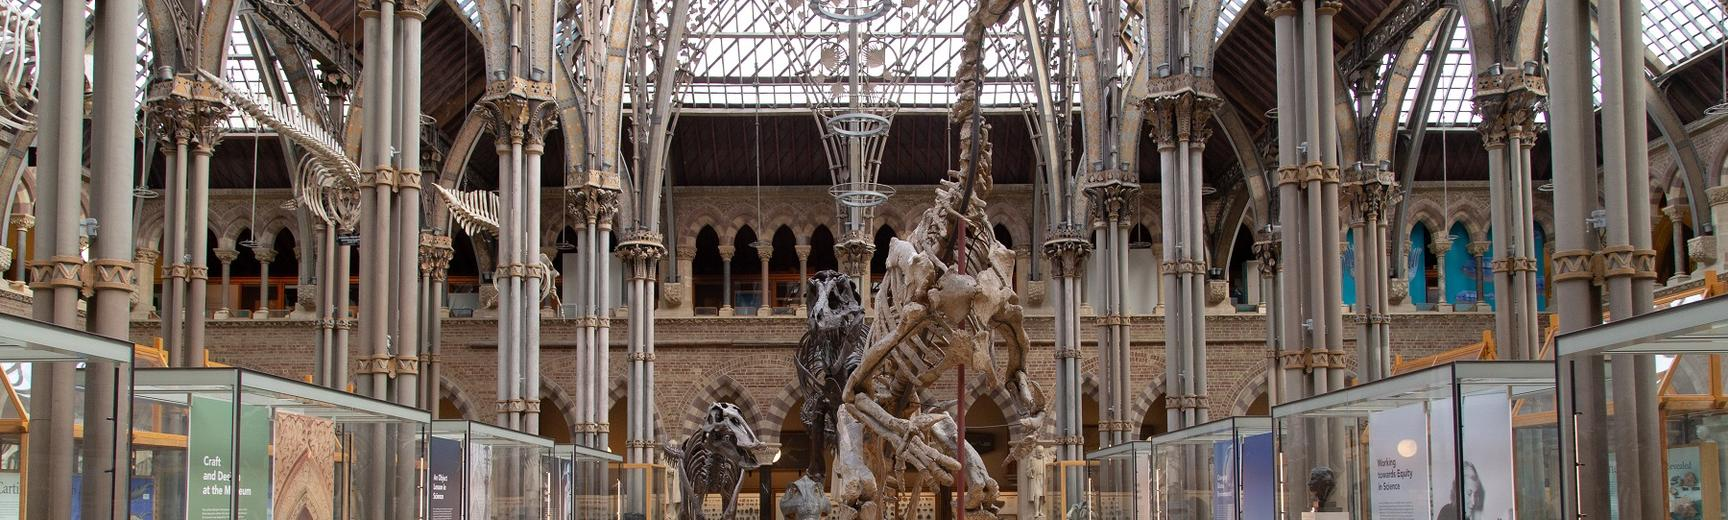 Interior shot of court of iron architecture and glass roof, hosing glass showcases and dinosaur skeletons